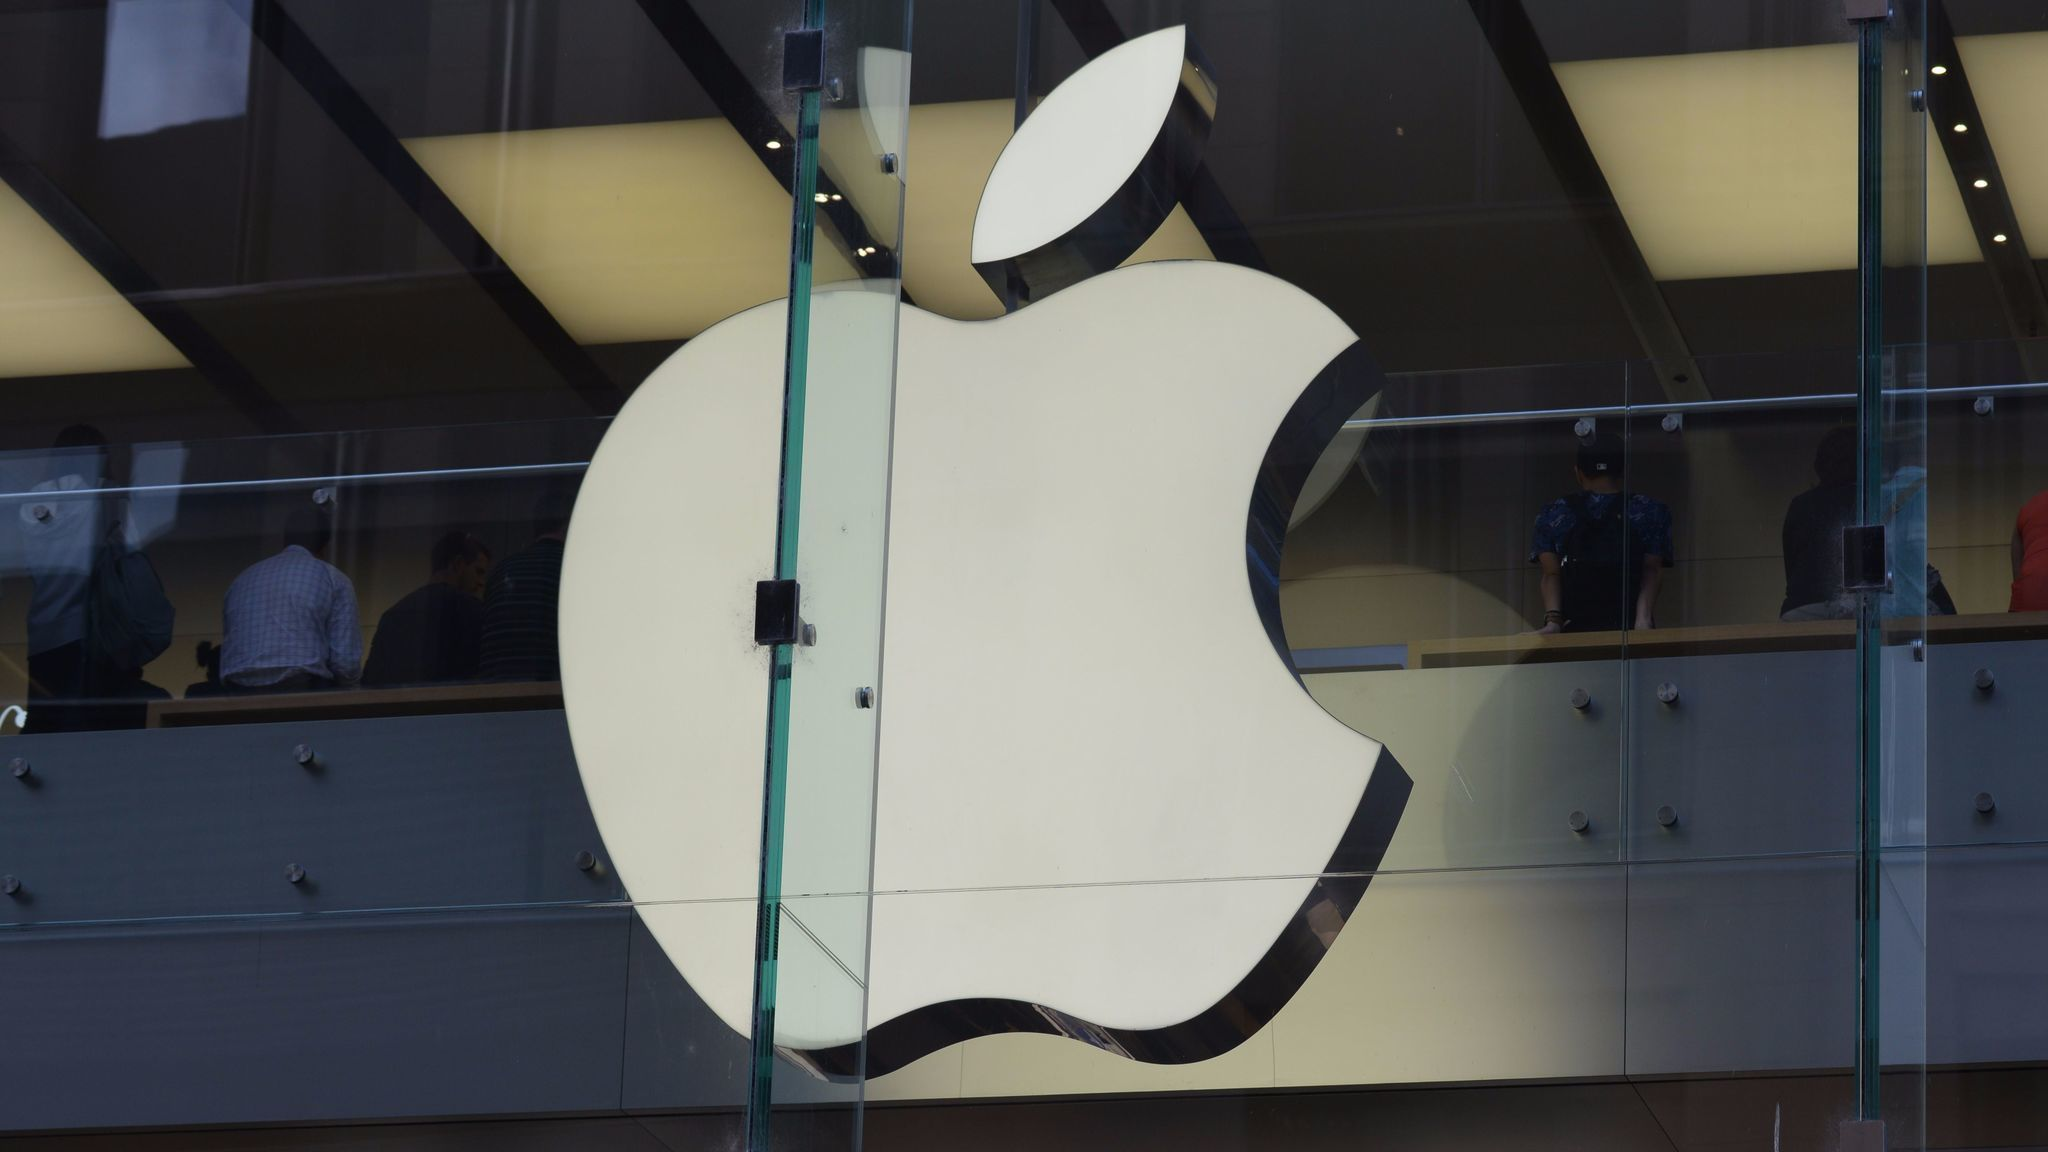 Apple is working on self-driving car technology, Tim Cook confirms